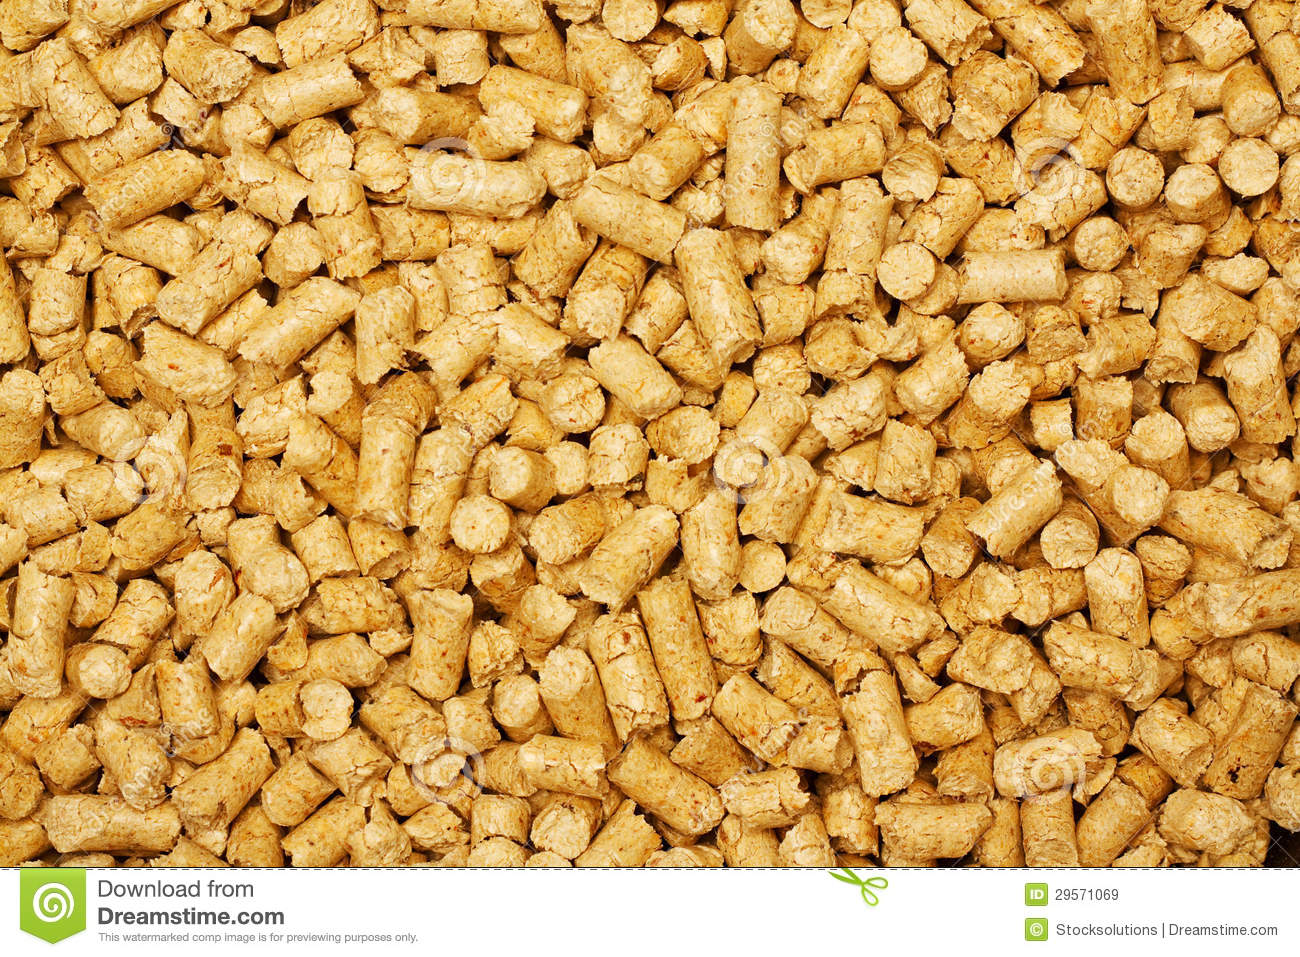 Burning wood chip biomass fuel a renewable alternative